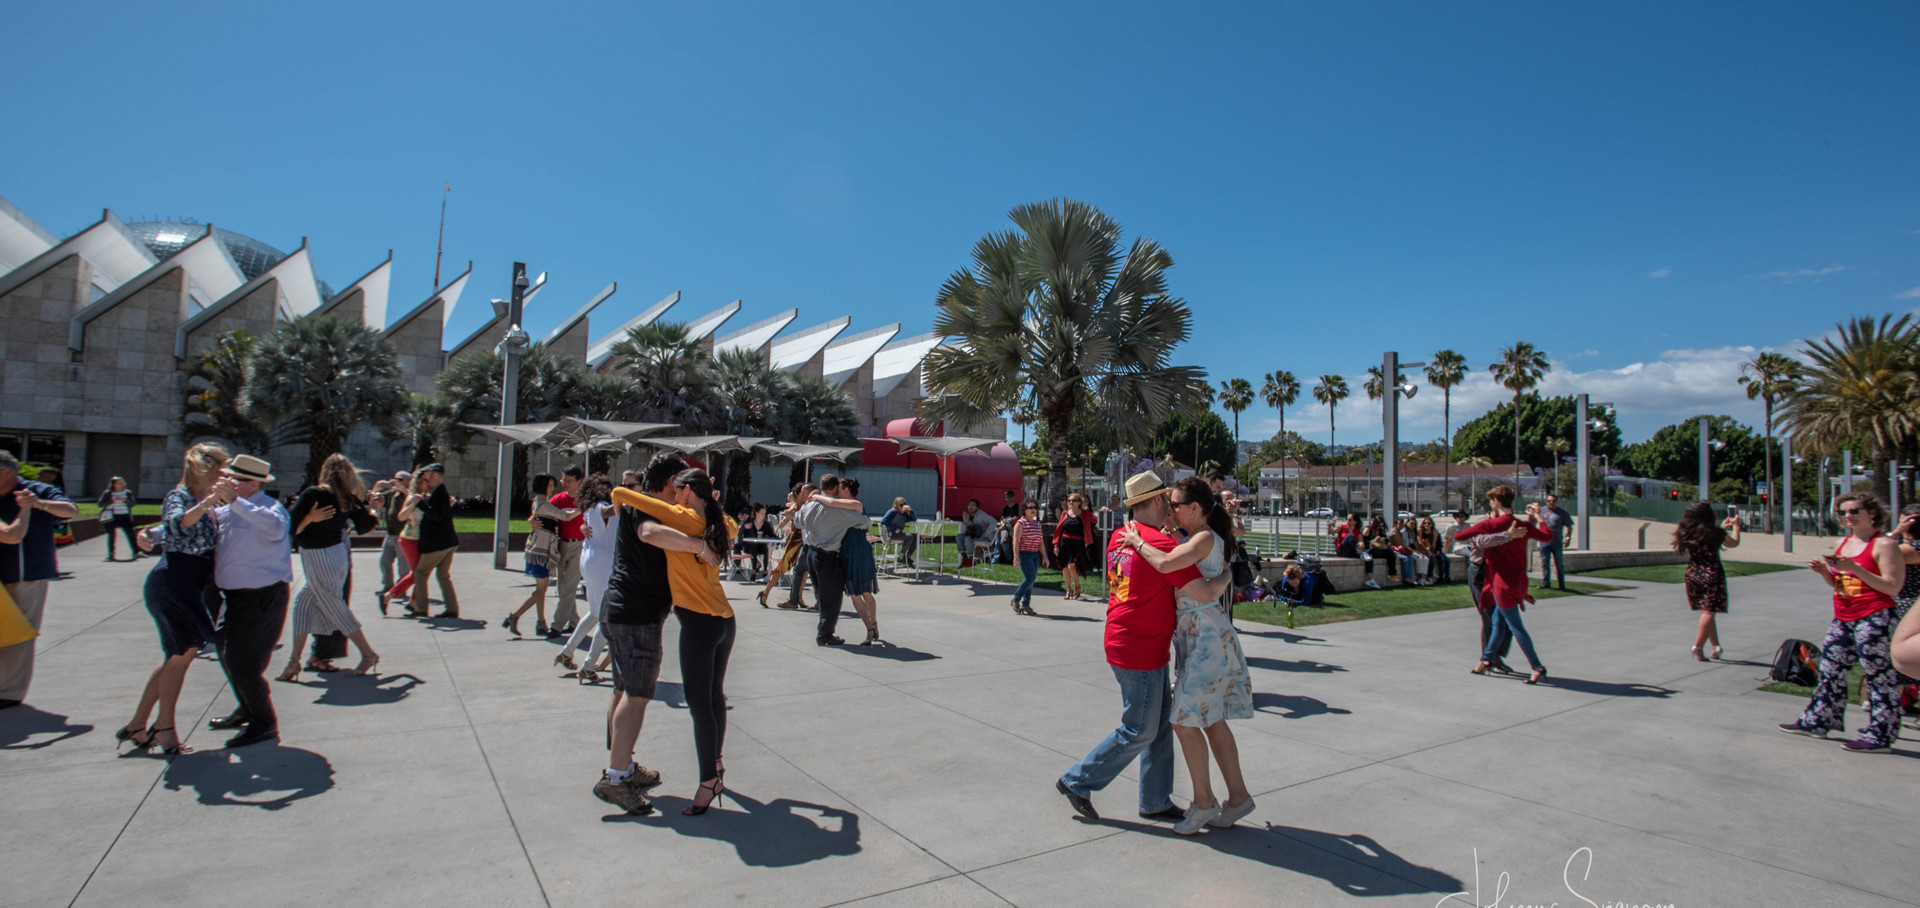 Guerilla flashmob at LACMA 2019